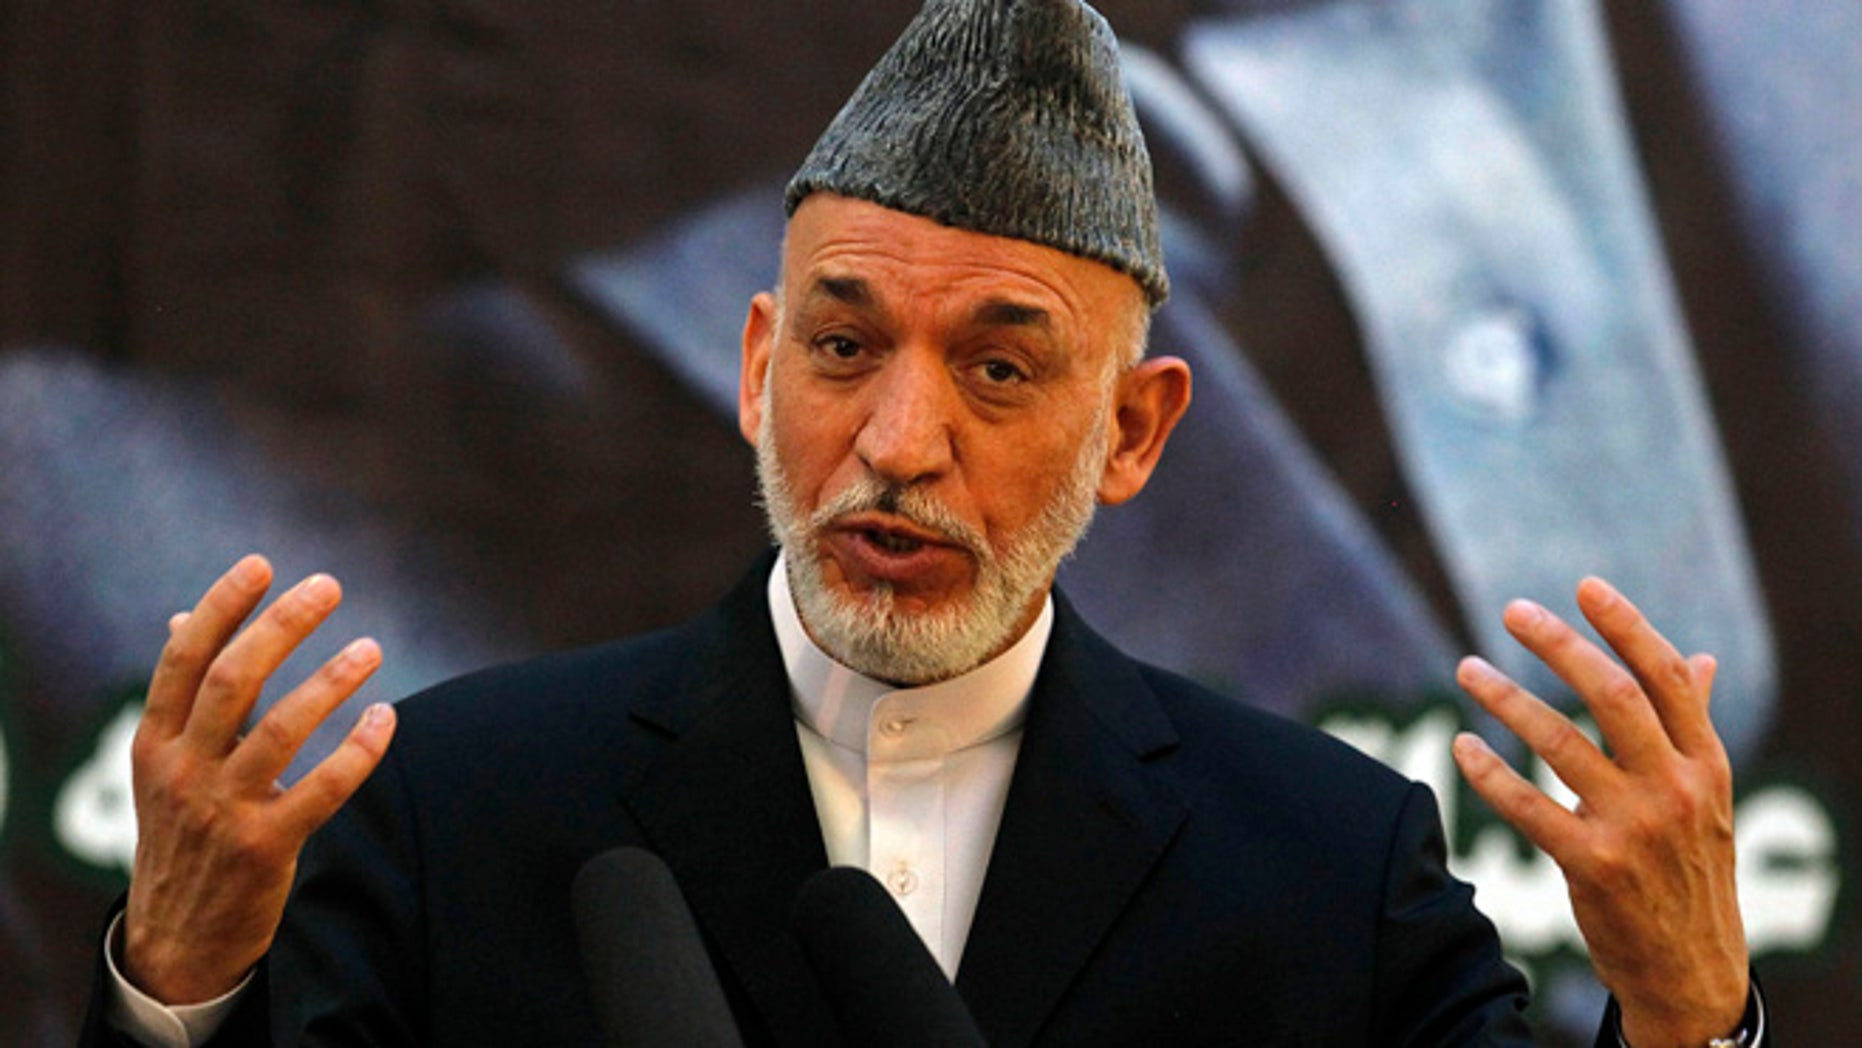 June 18, 2013: Afghan President Hamid Karzai speaks during a joint news conference with NATO Secretary-General Anders Fogh Rasmussen following a security handover ceremony at a military academy outside Kabul. Afghanistan will send a team to Qatar for peace talks with the Taliban, Karzai said on Tuesday, as the U.S.-led NATO coalition launched the final phase of the 12-year war with the last round of security transfers to Afghan forces.